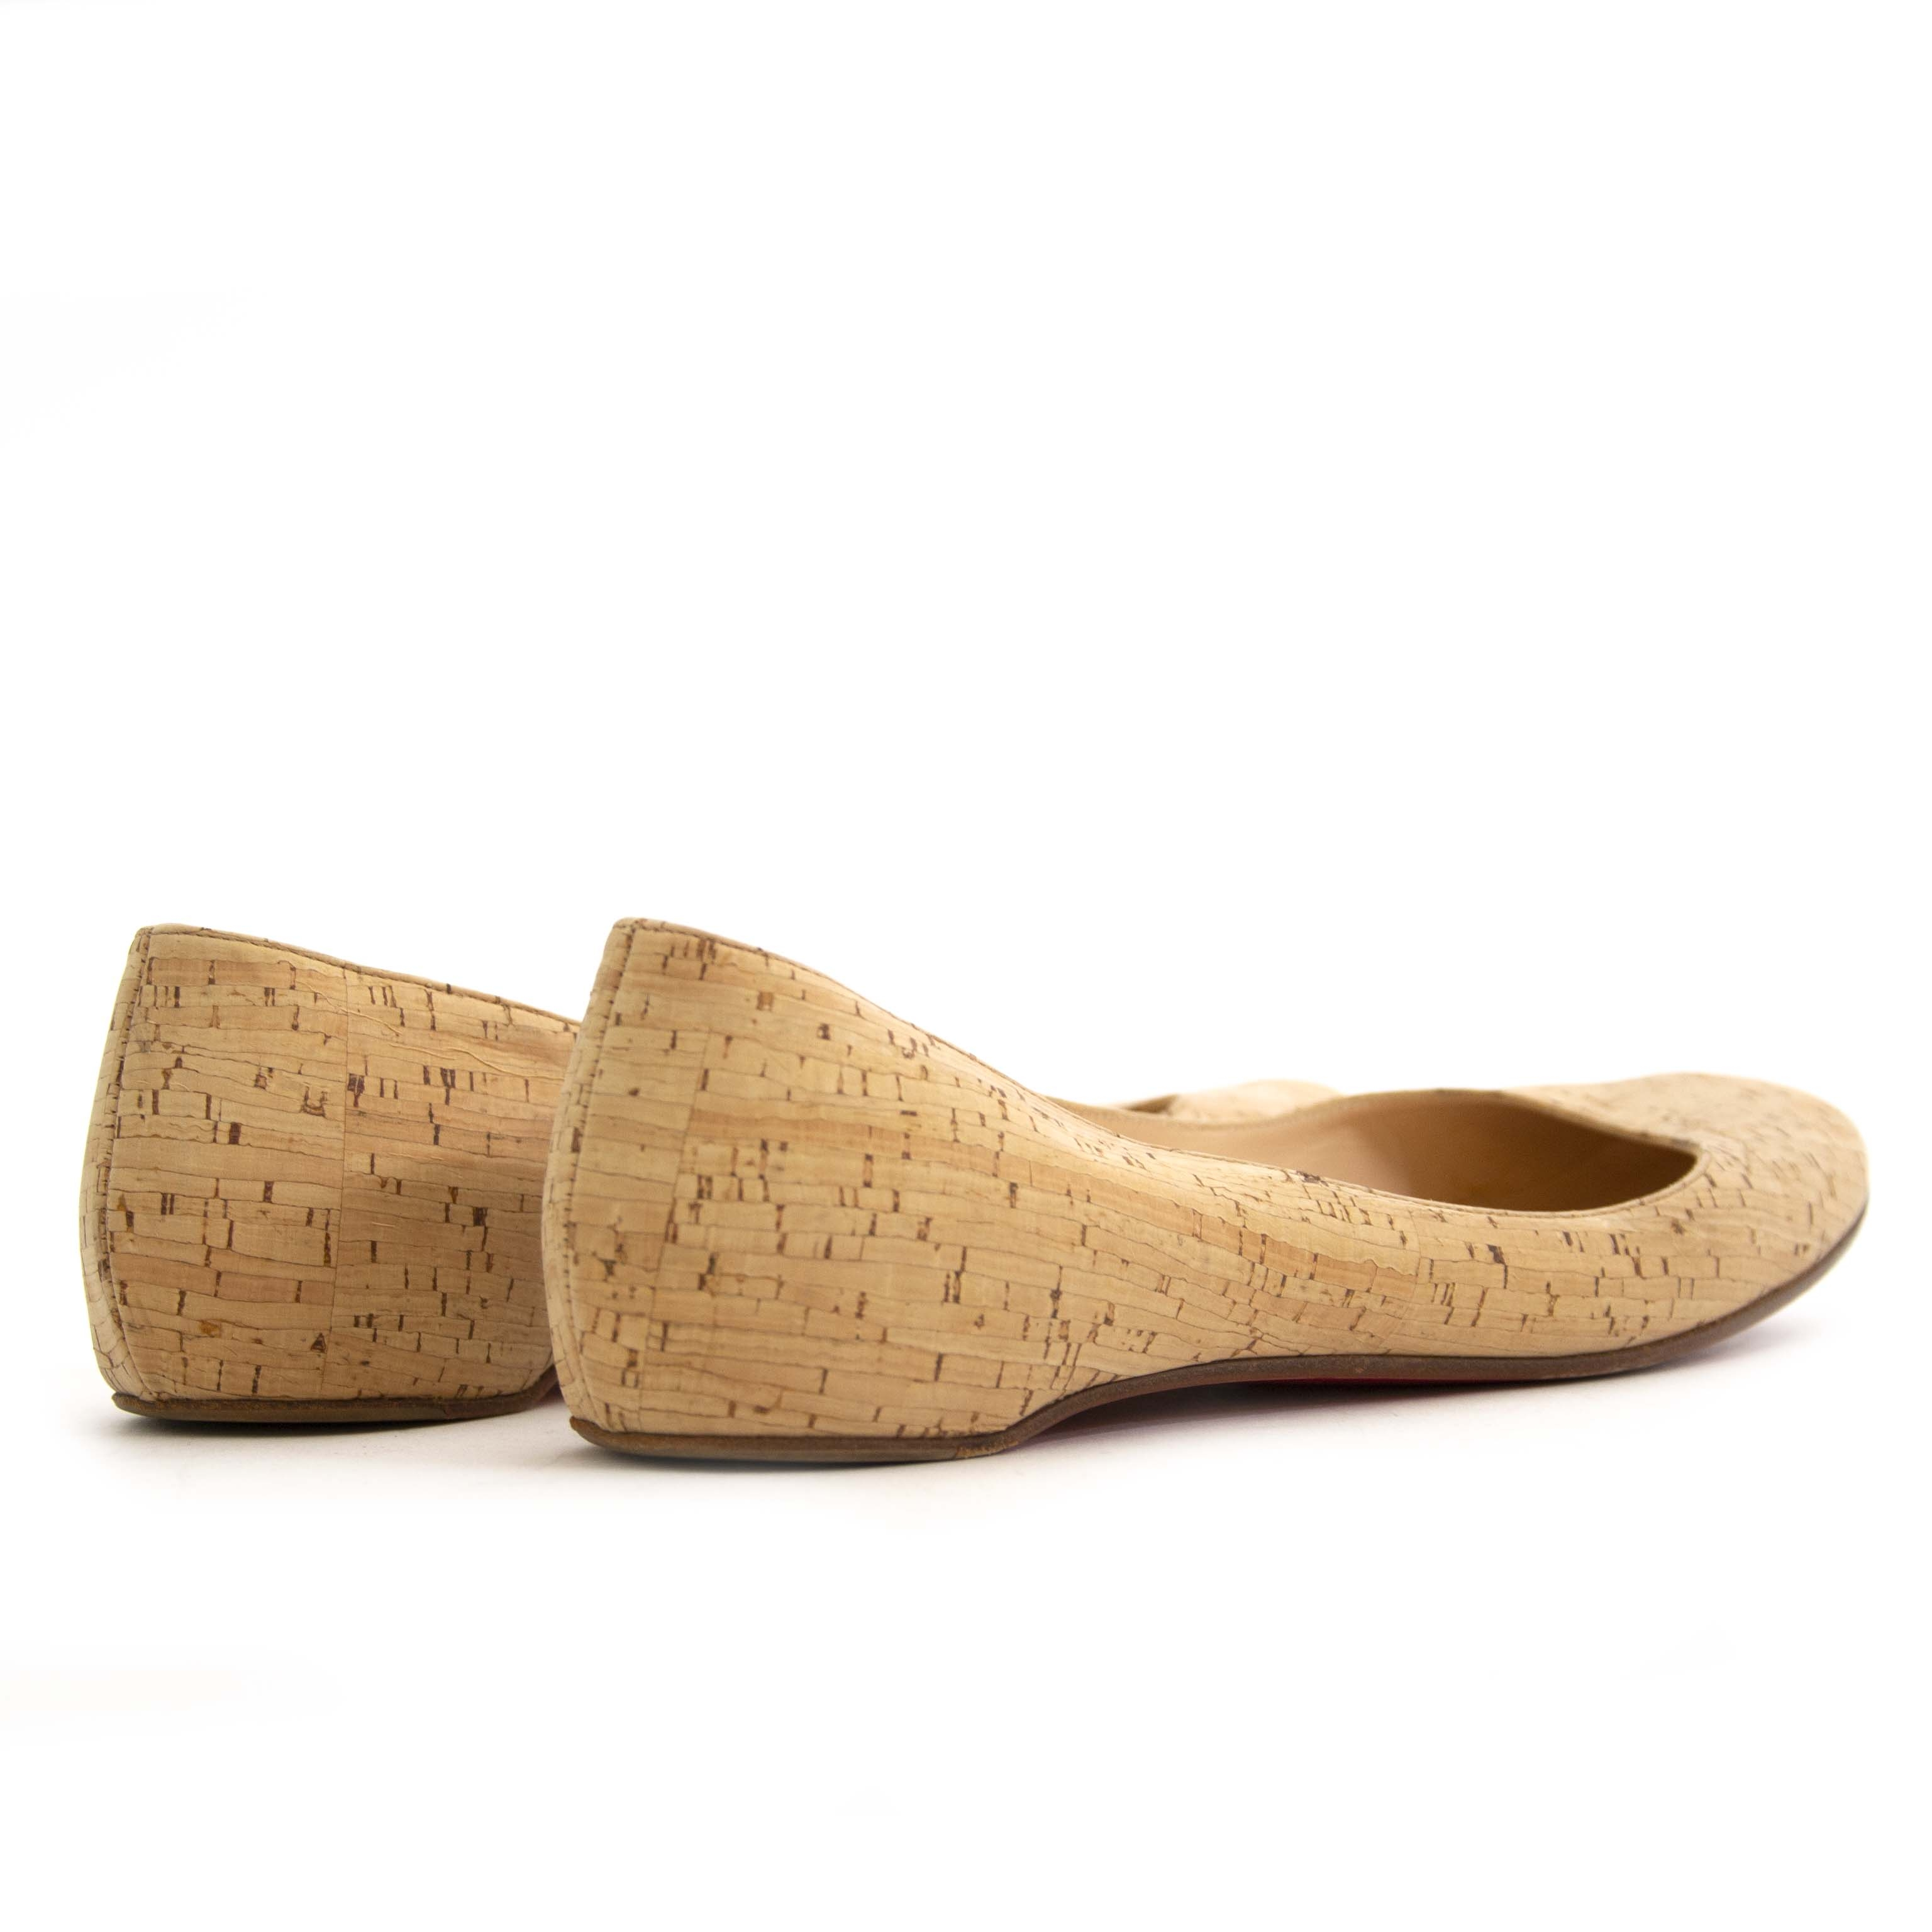 6e817103d74a9 Now for sale Louboutin Beige Natural Polished Cork Ballerina Flats - Size  38